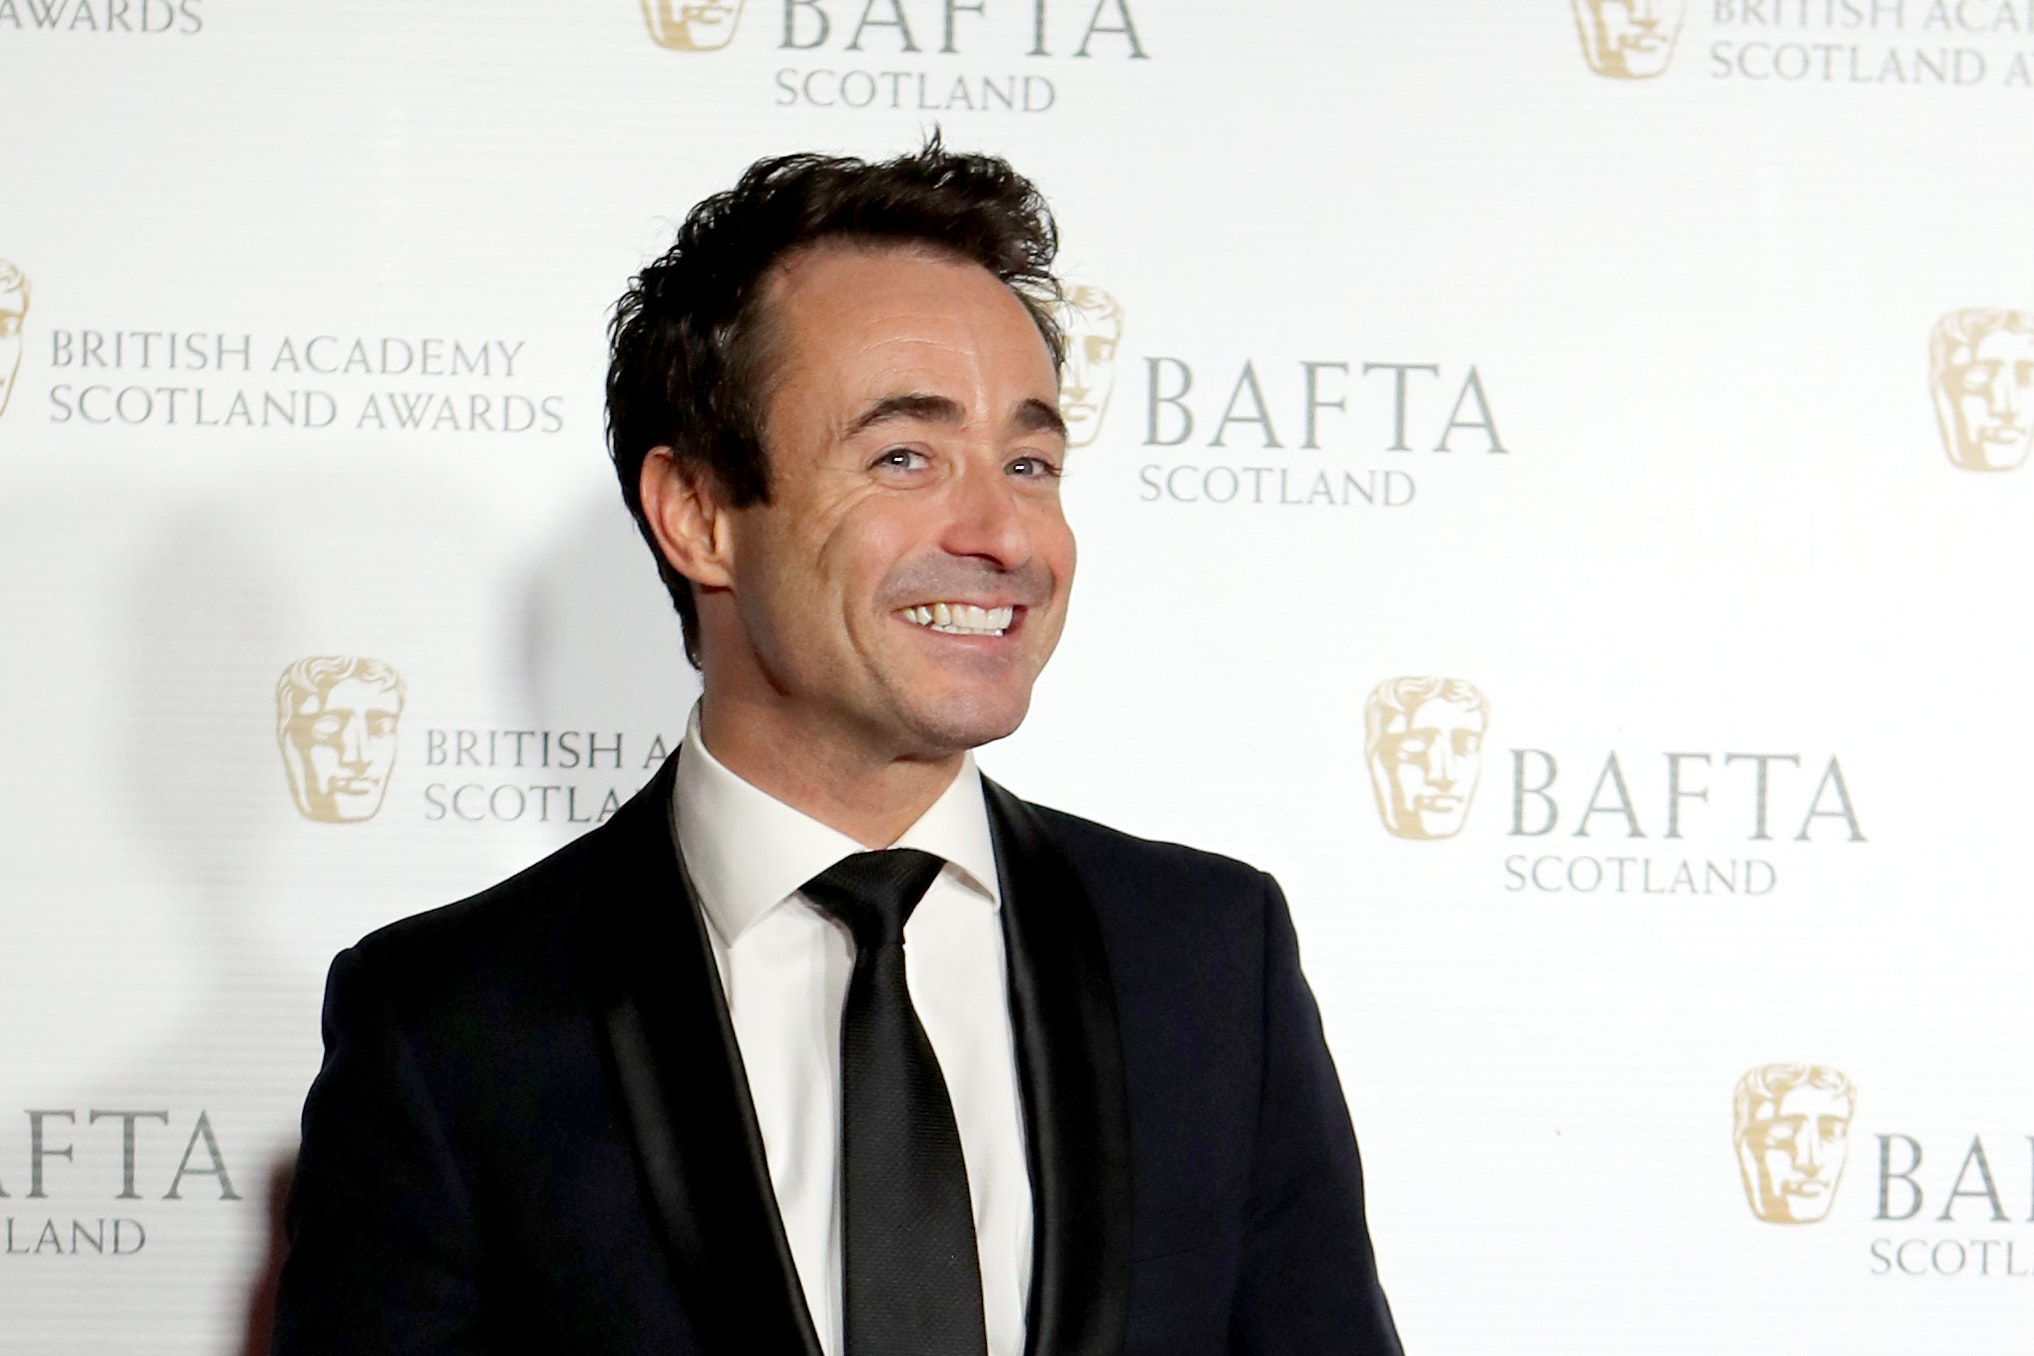 Joe McFadden arriving for the British Academy of Film and Television Arts in Scotland (BAFTA Scotland) Awards at the Radisson Blu Hotel in Glasgow (PA)